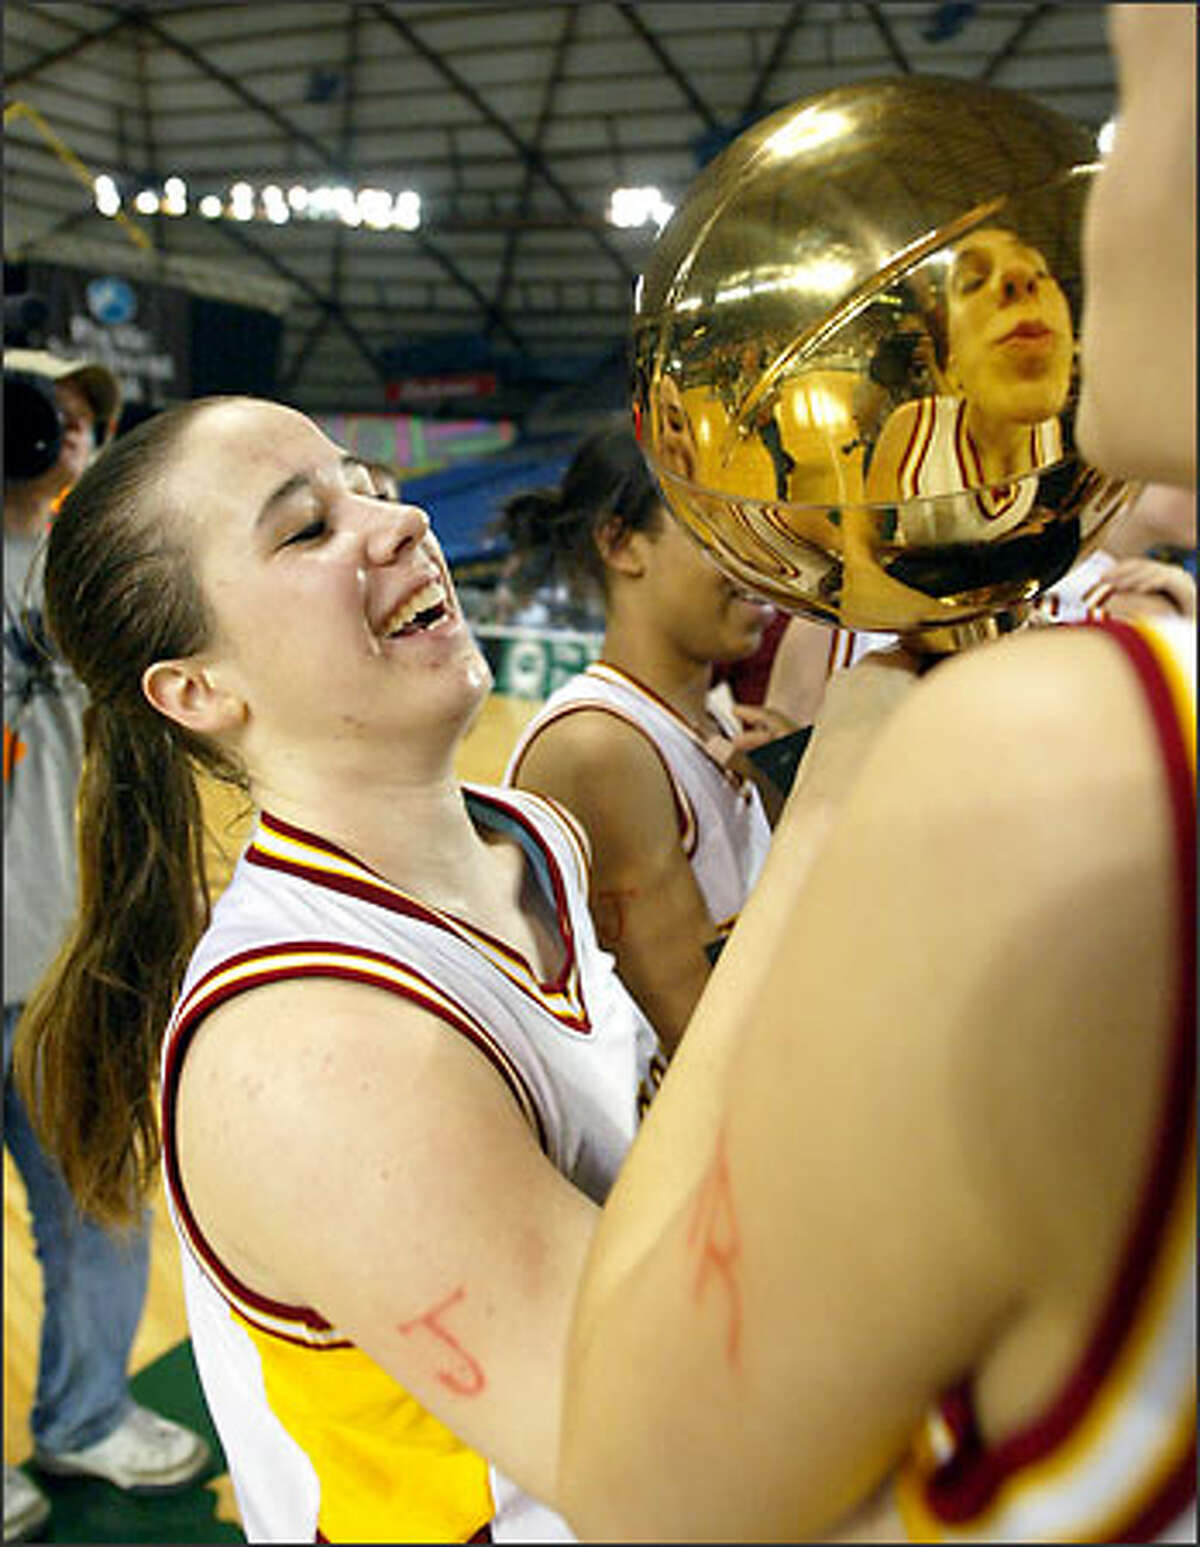 Prairie's Lauren Short, left, holds the trophy as teammate Jessica Menkens, right, prepares to plant a kiss on it after the team's 44-39 win over Central Valley in the girls Washington Class 4A championship game.